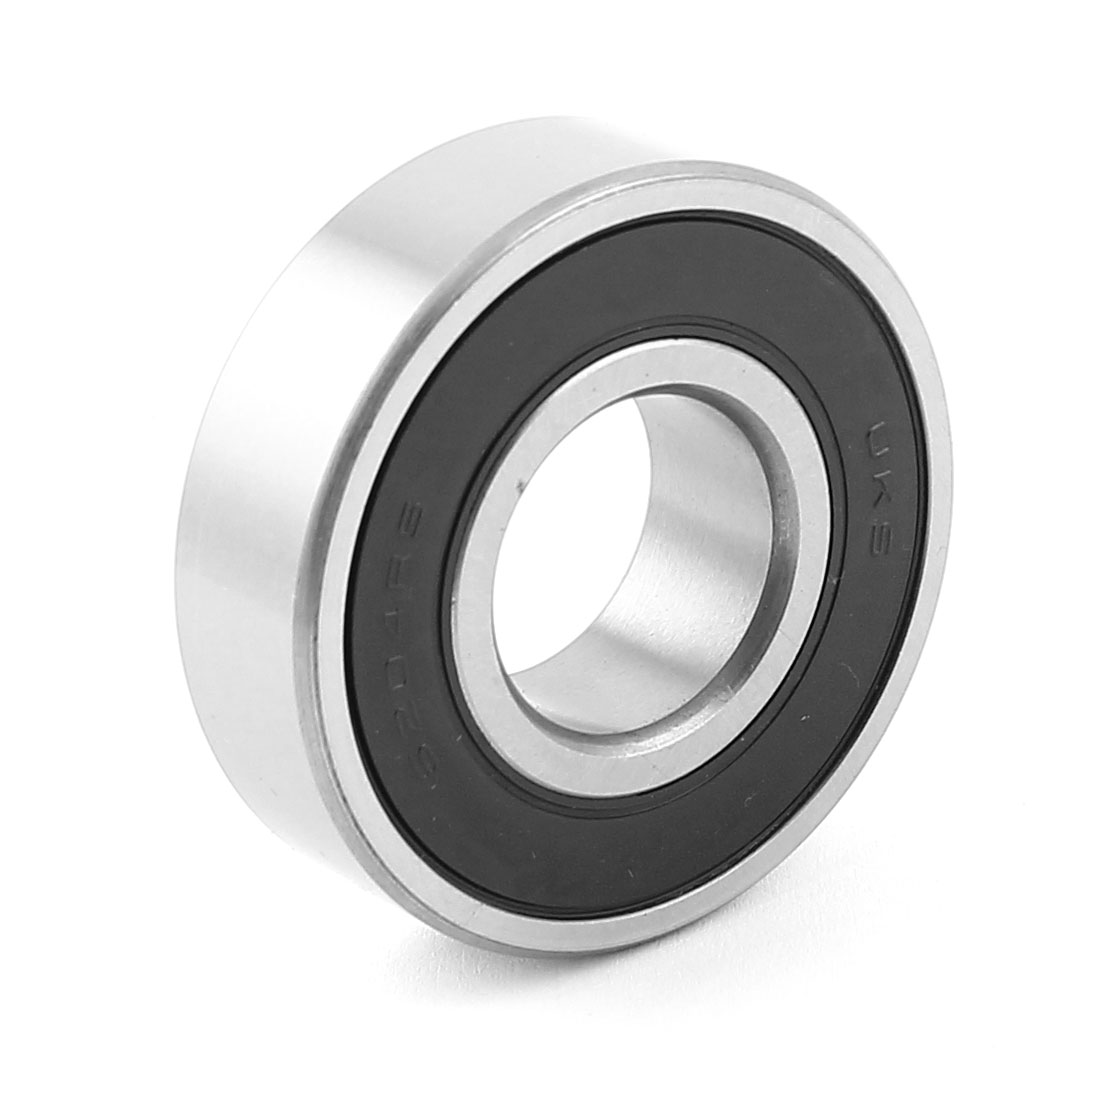 6204RS 47mm x 20mm x 13mm Rubber Sealed Bearing Deep Groove Ball Bearings